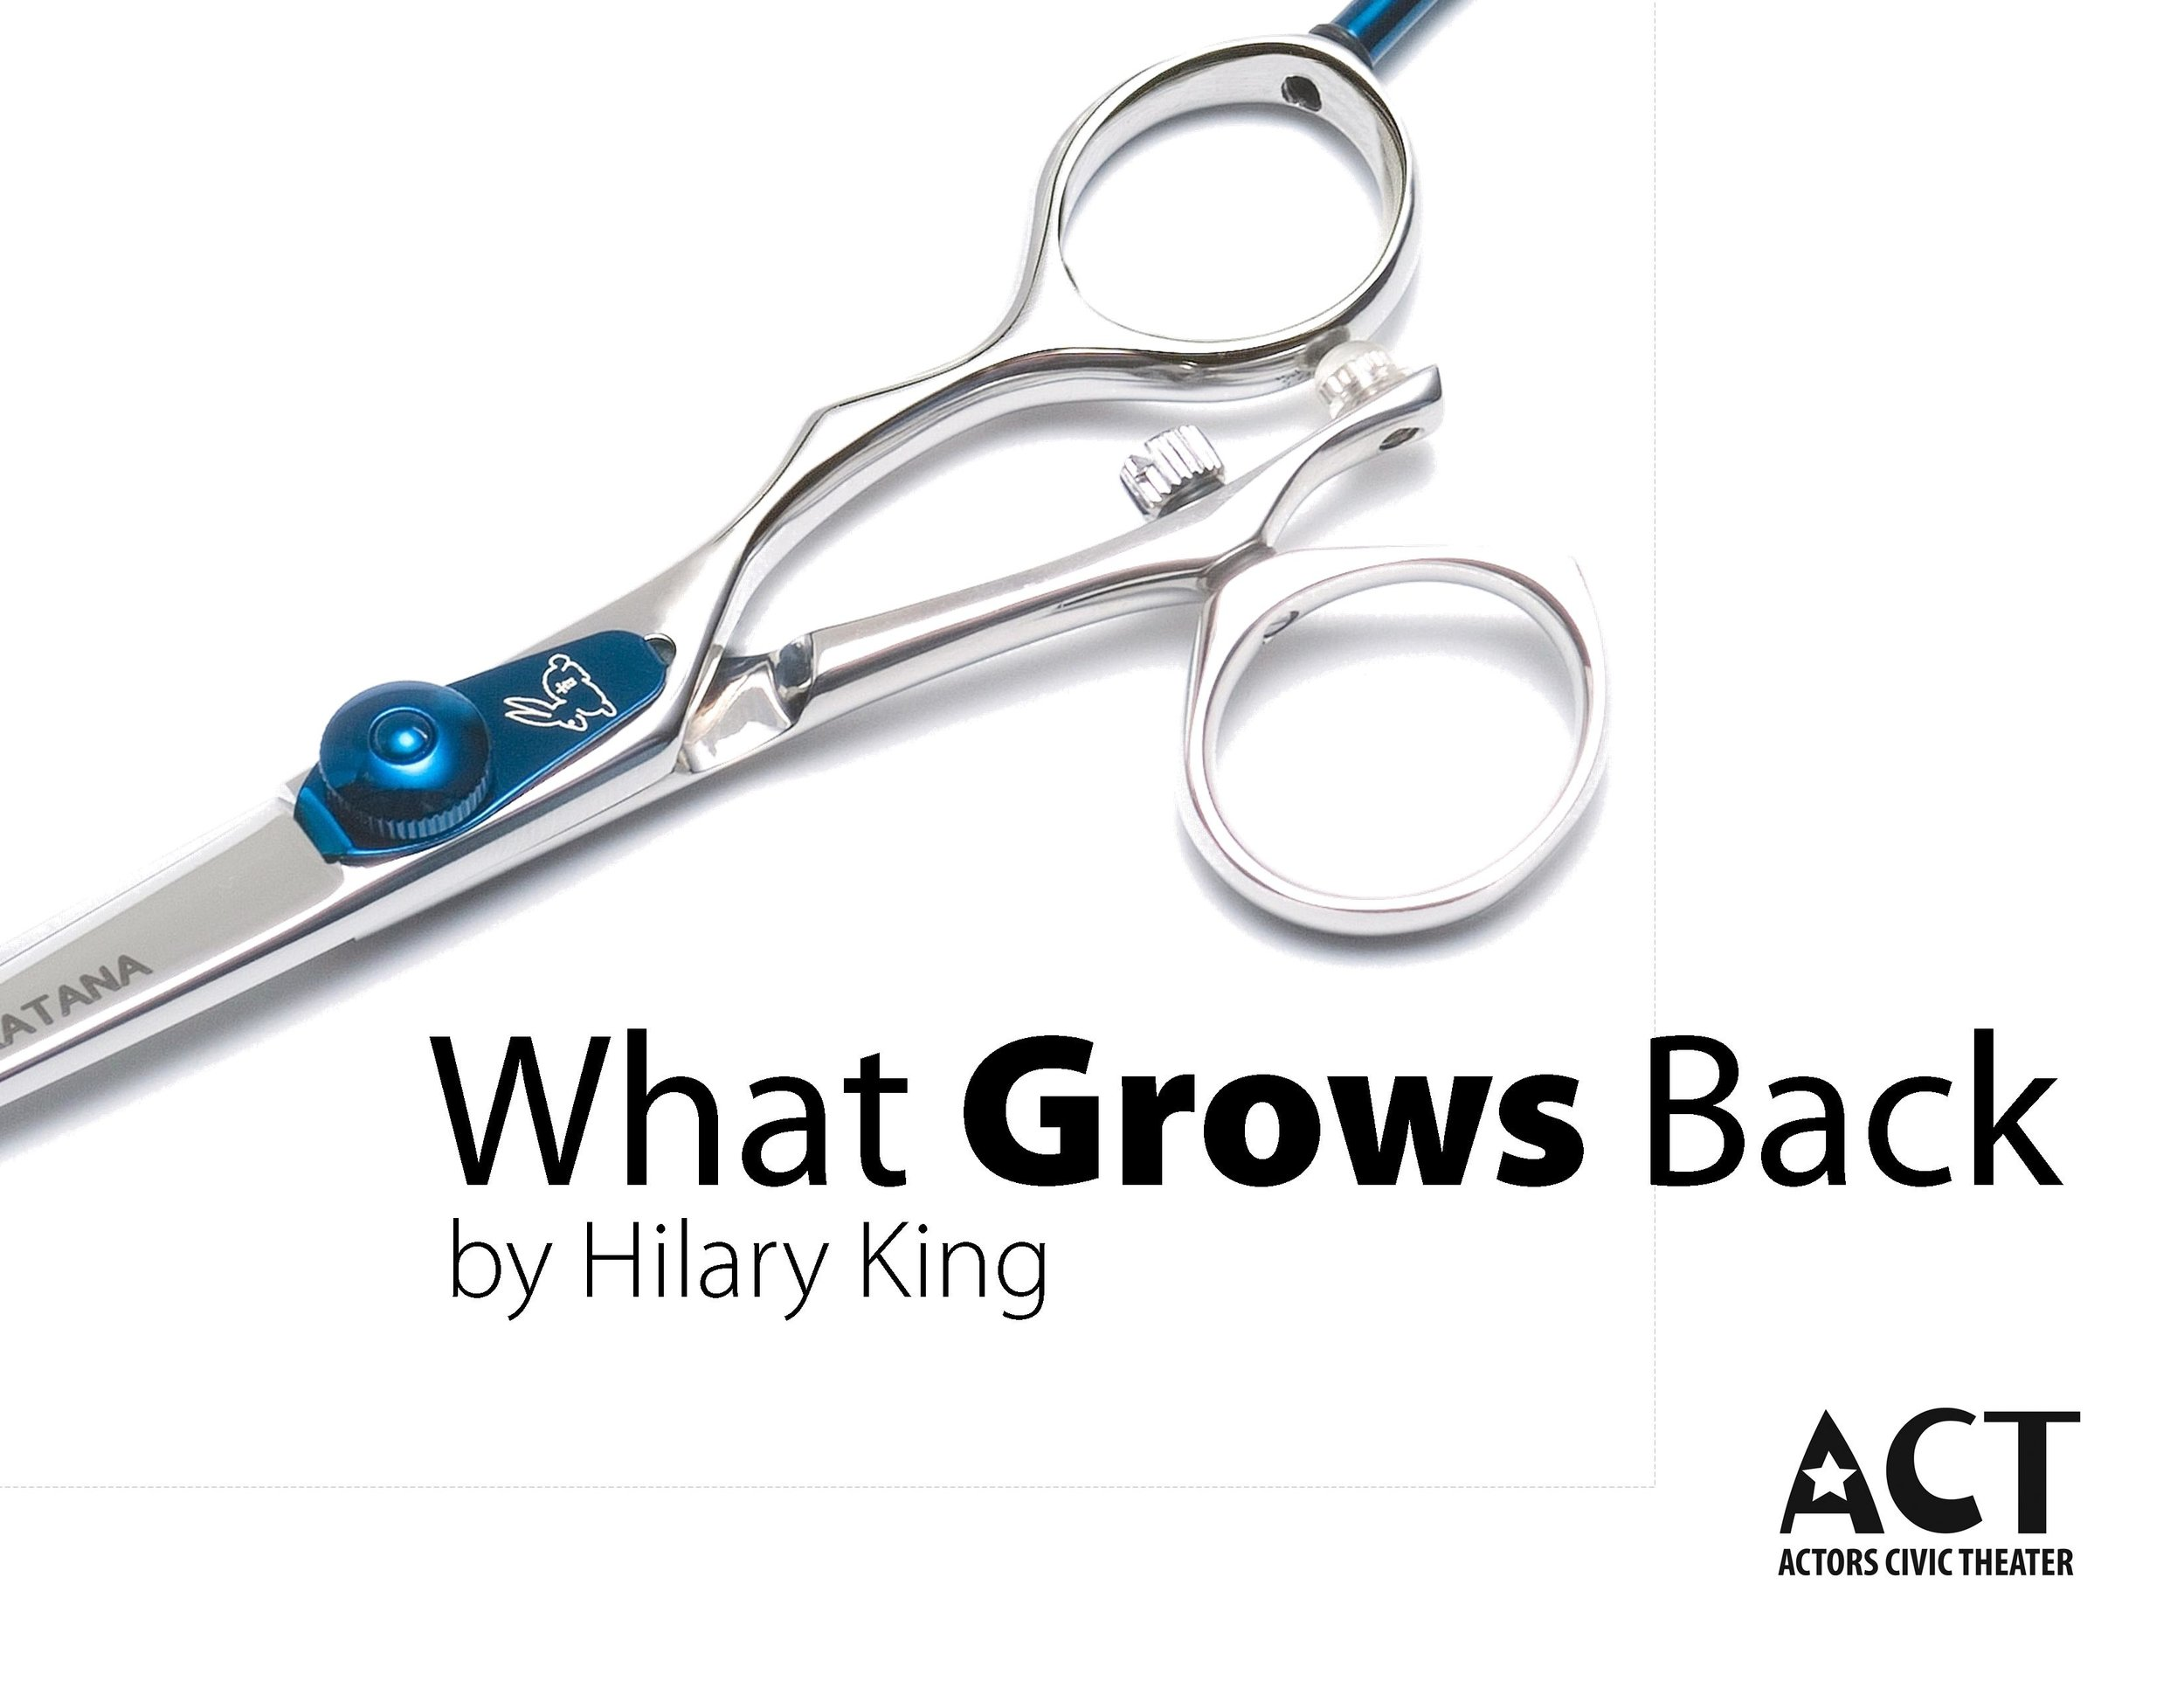 What Grows Back Poster.jpg